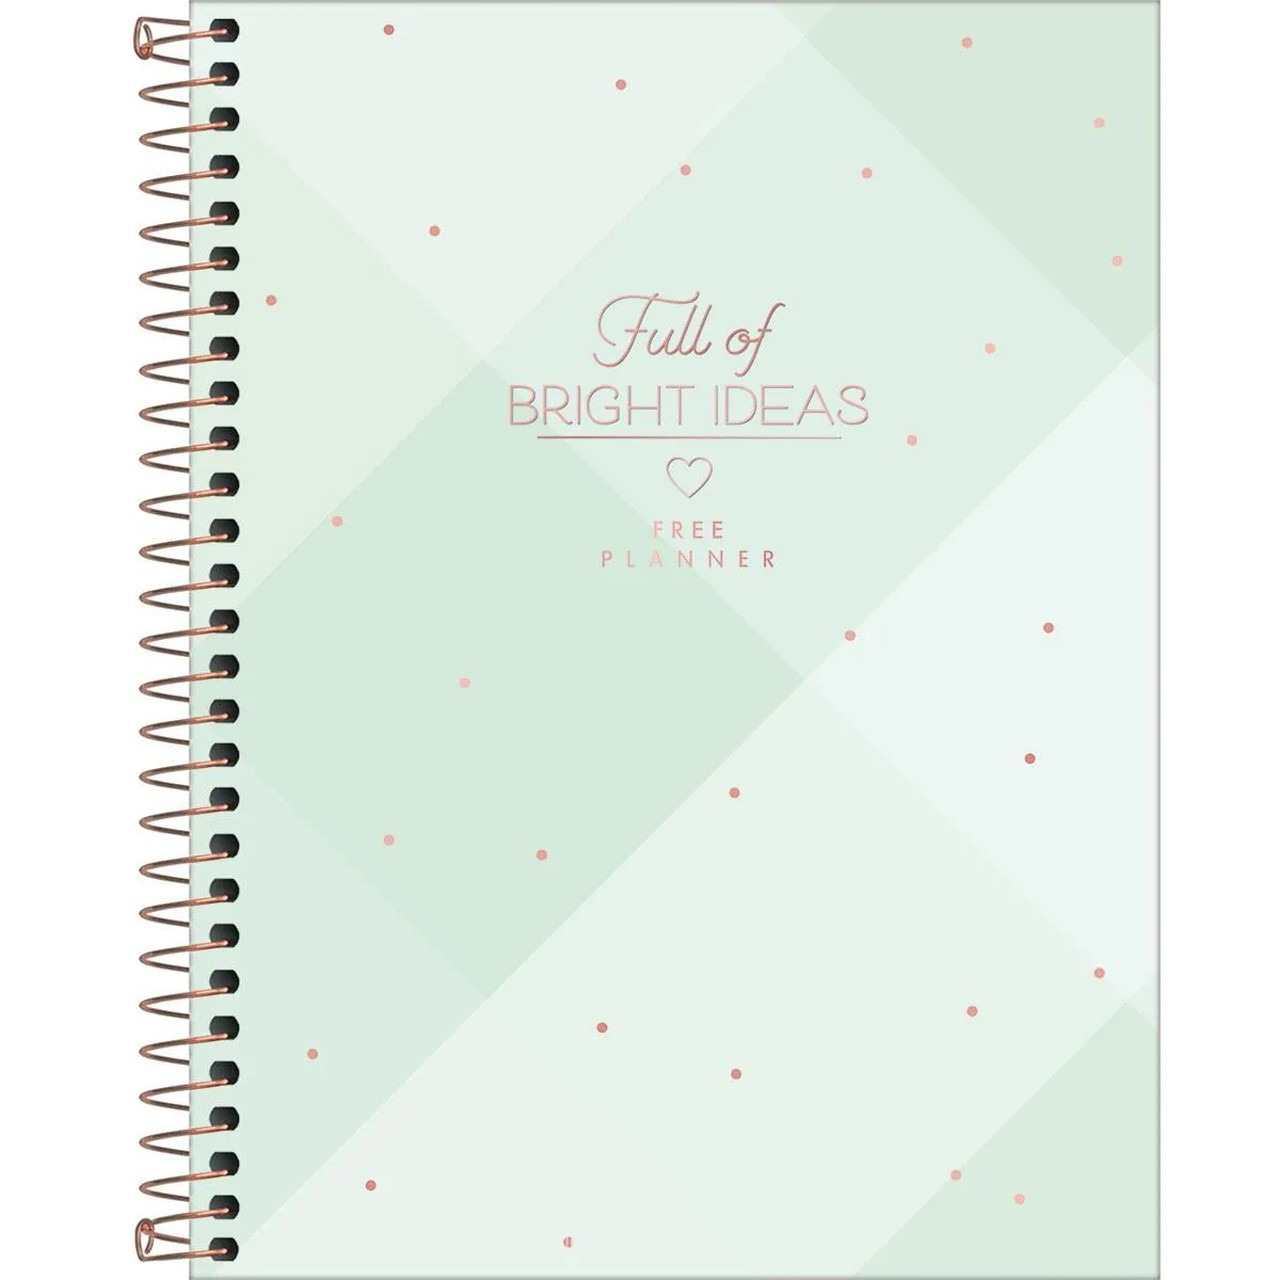 Planner Free Full of Bright Ideas soho - Tilibra